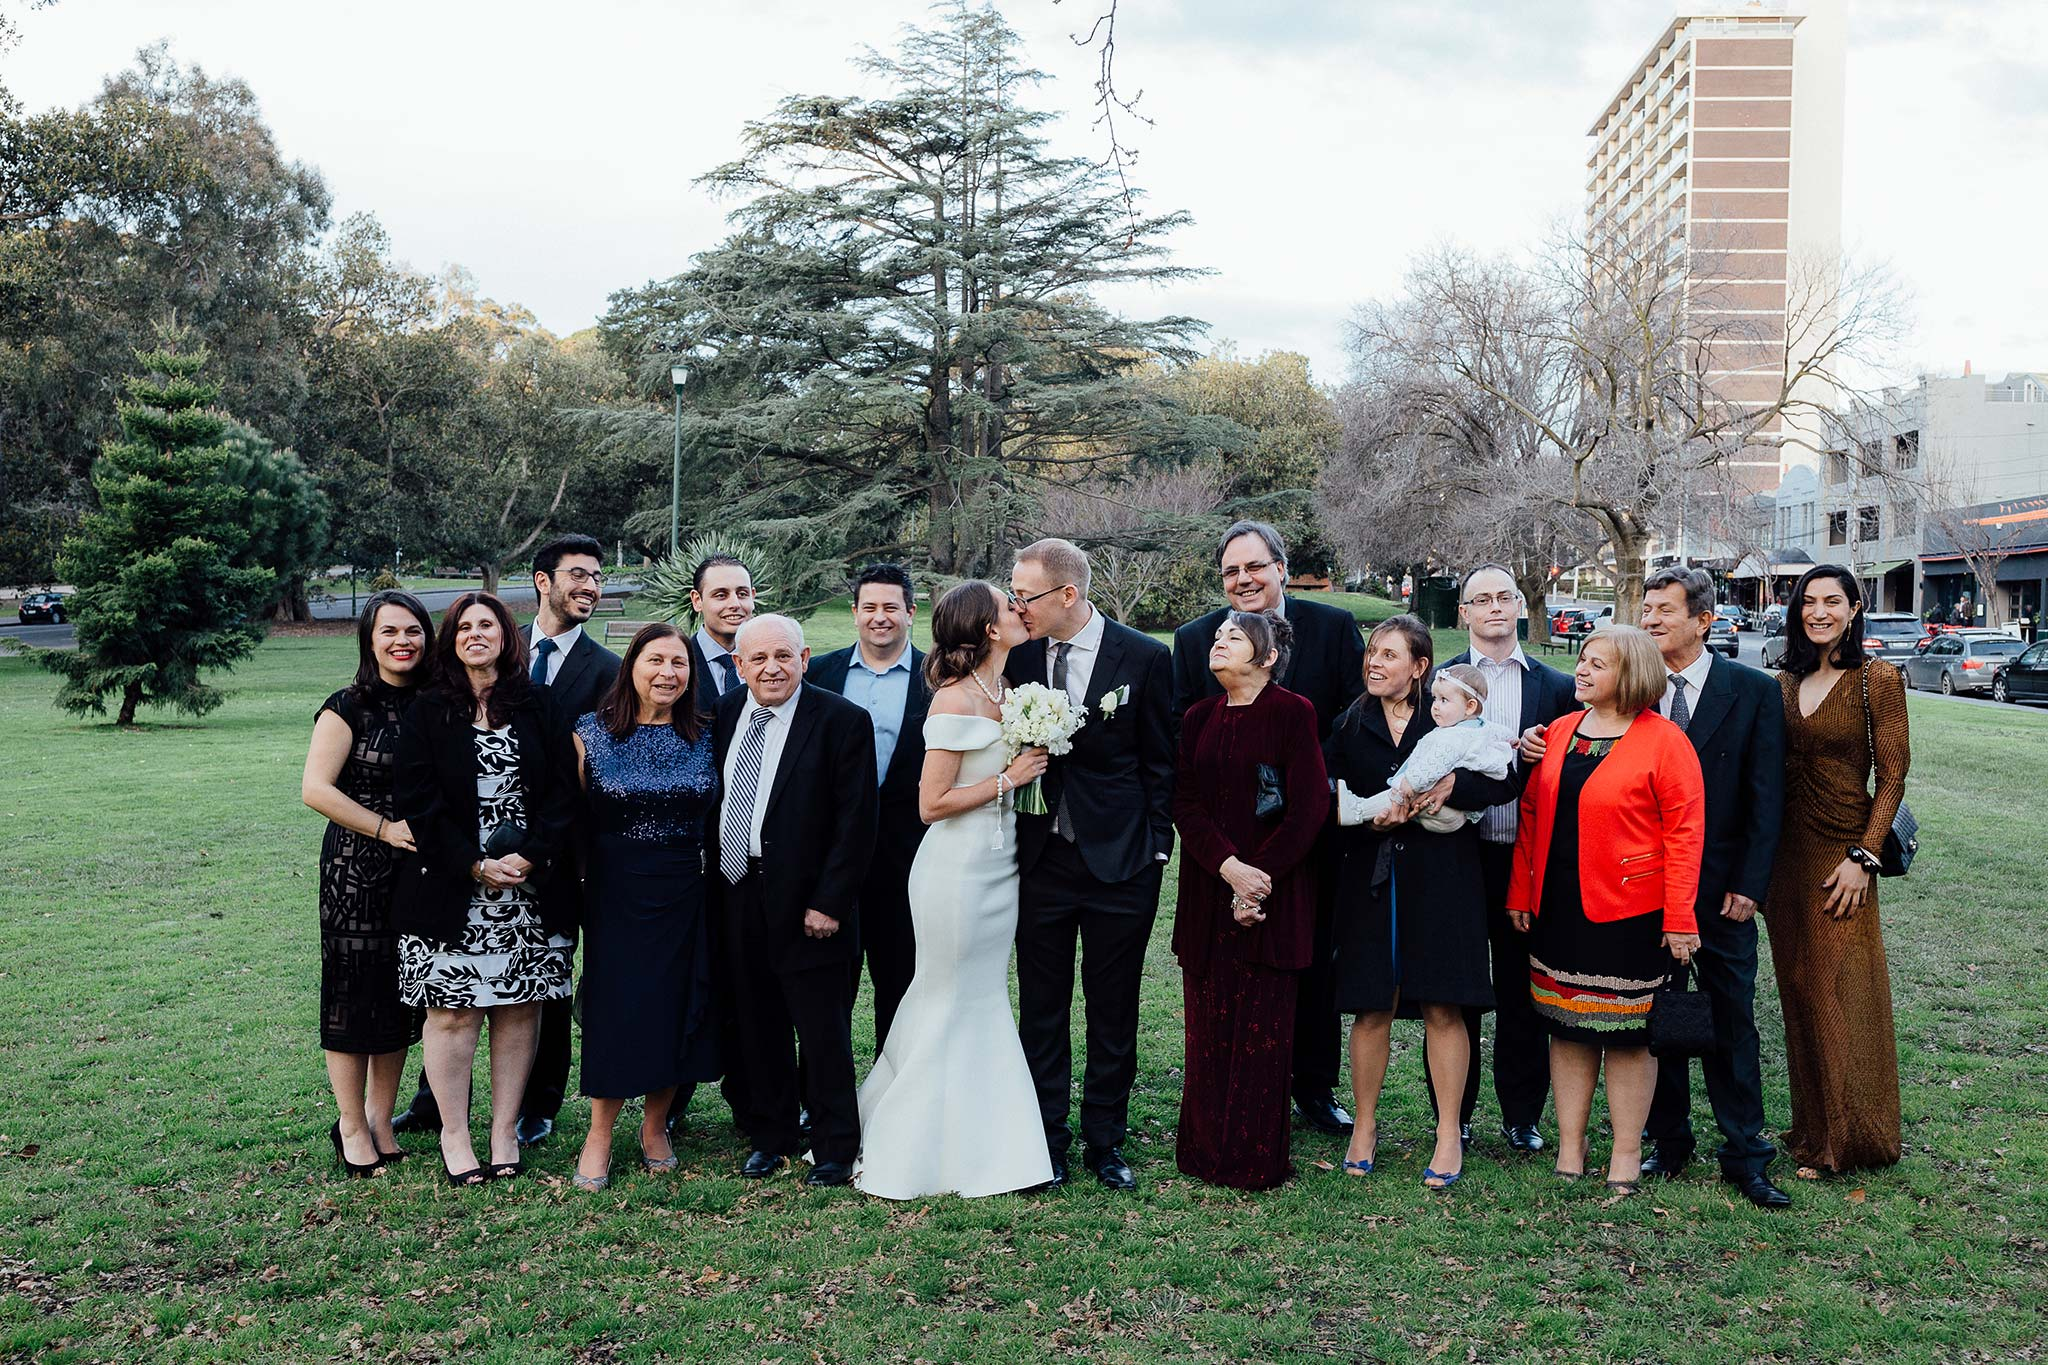 melbourne-entrecote-wedding-group-portrait